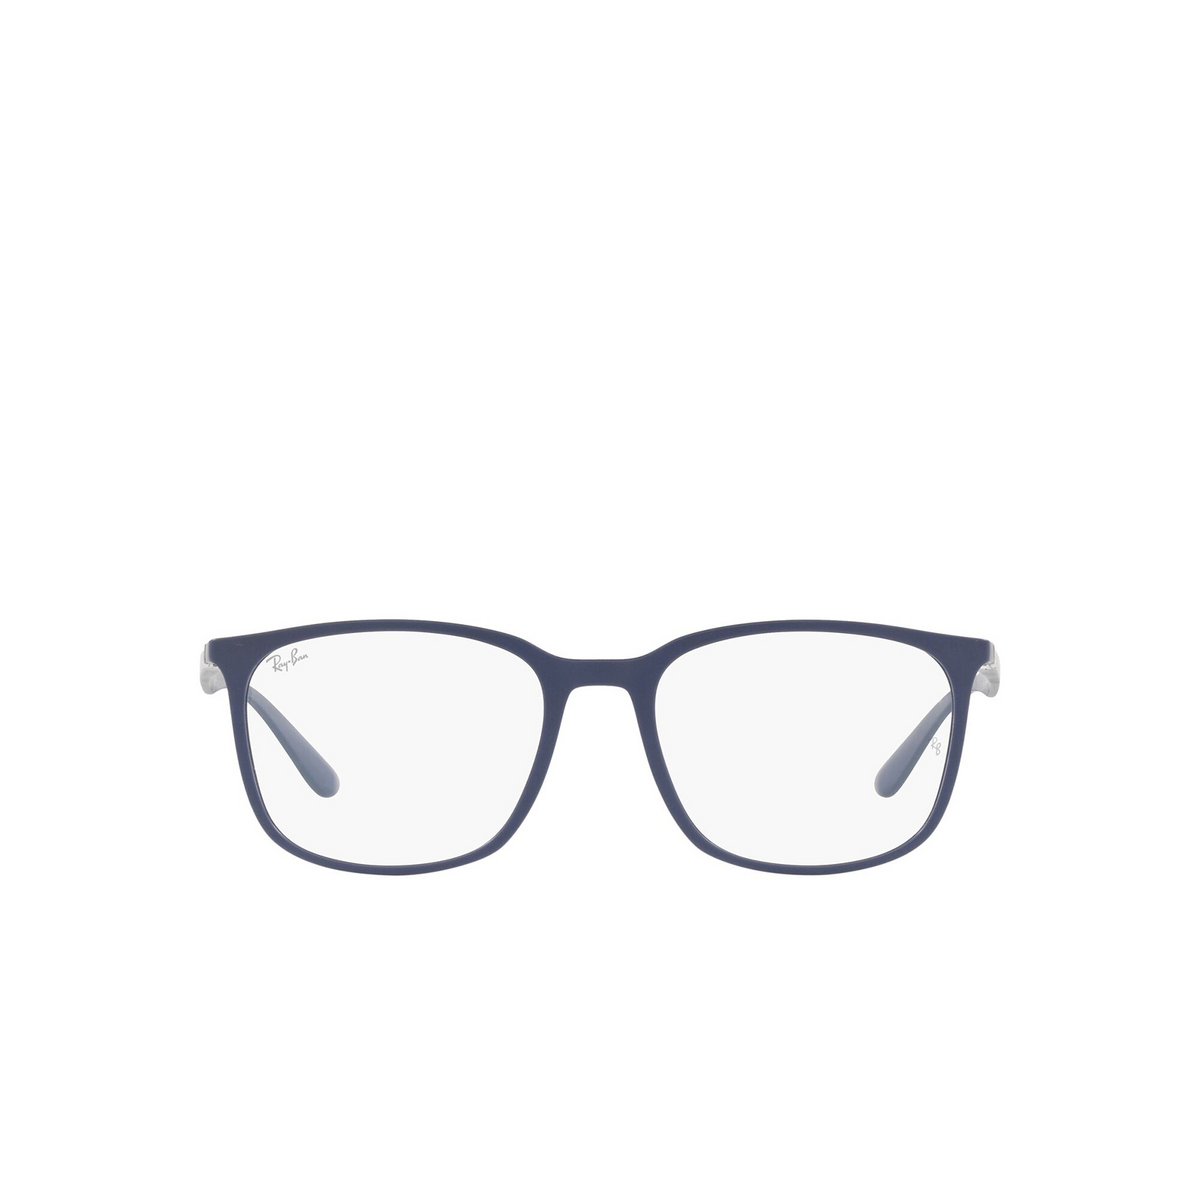 Ray-Ban® Square Eyeglasses: RX7199 color Sand Blue 5207 - front view.